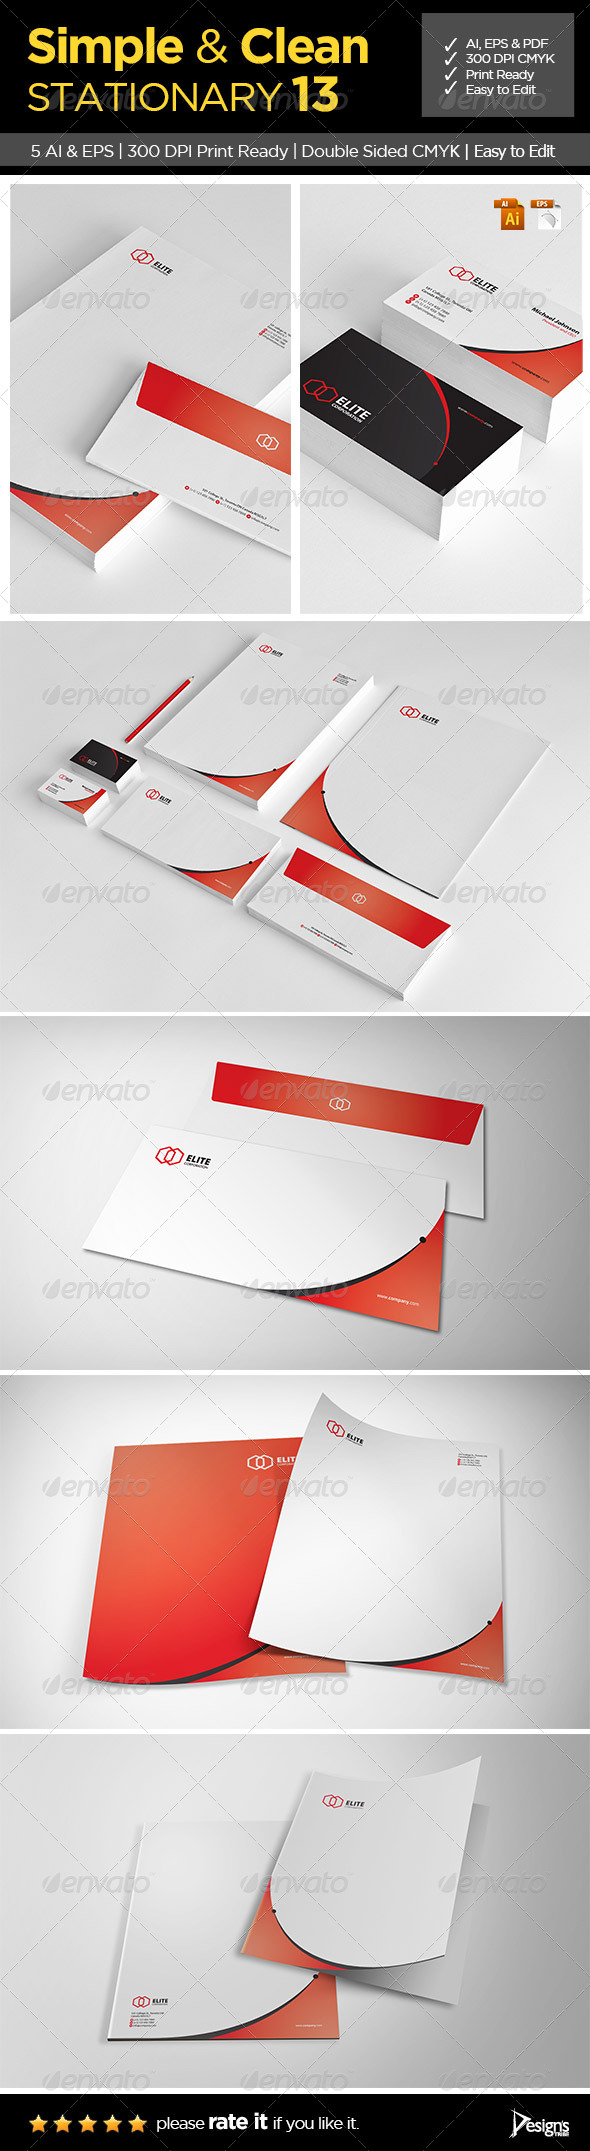 GraphicRiver Simple and Clean Stationary 13 6339094